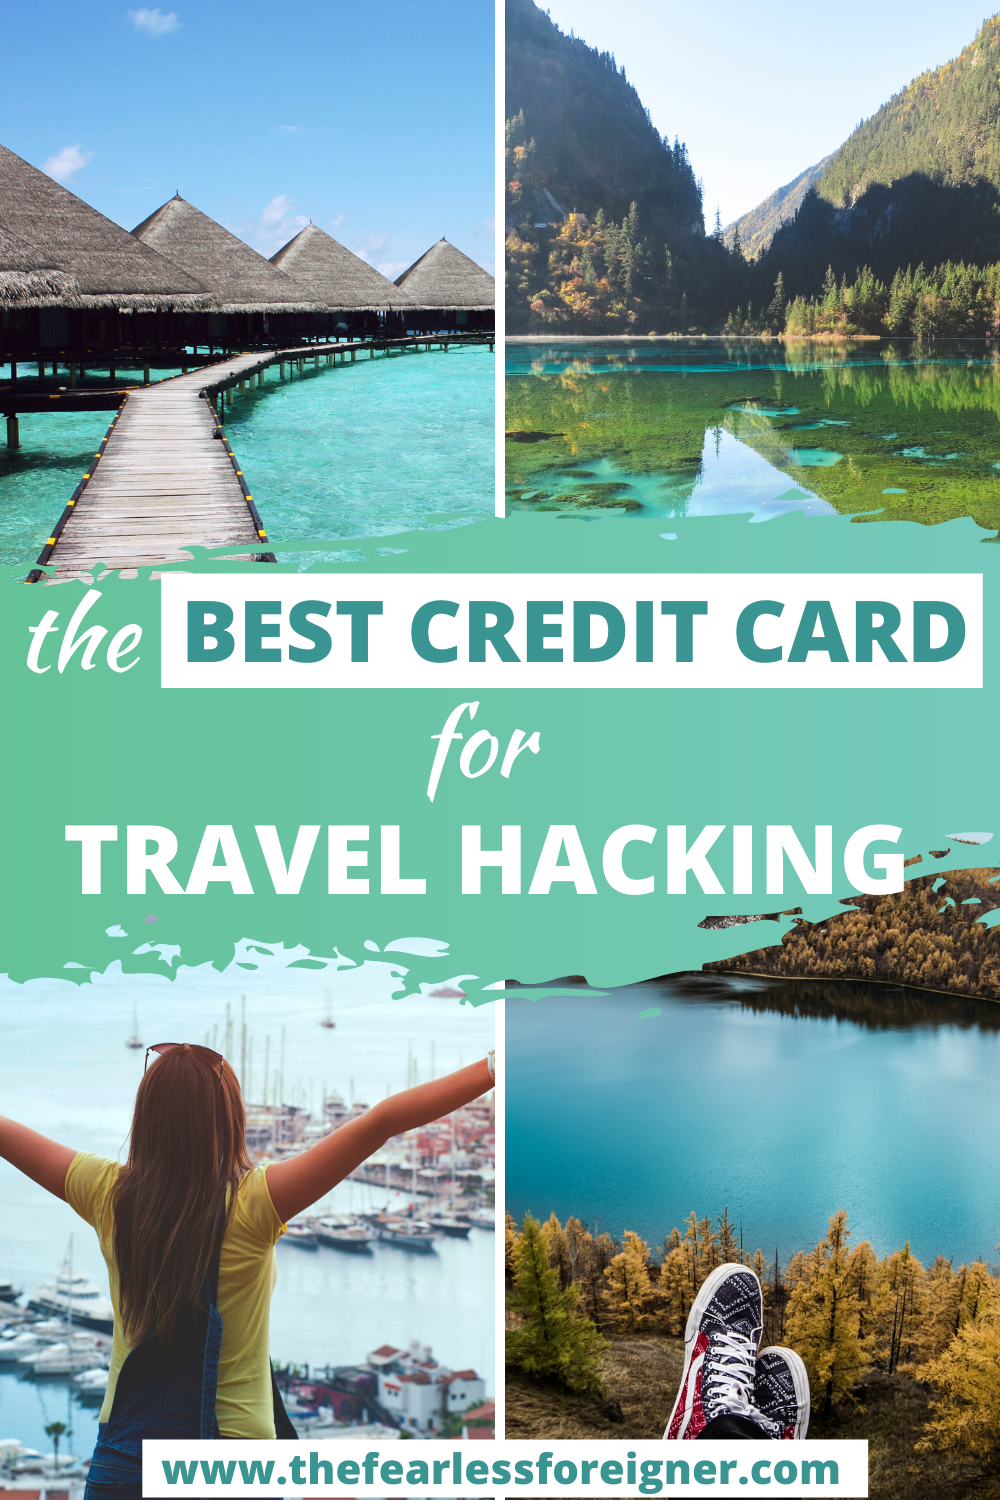 Travel hacking is one of the easiest ways to save money for travel. One of the best ways to travel hack is with a rewards credit card. Find out the best credit card for earning travel rewards.   #TravelHacking #TravelTips #TravelCreditCard #ChaseSapphireReserve #TravelAdvice #TheFearlessForeigner